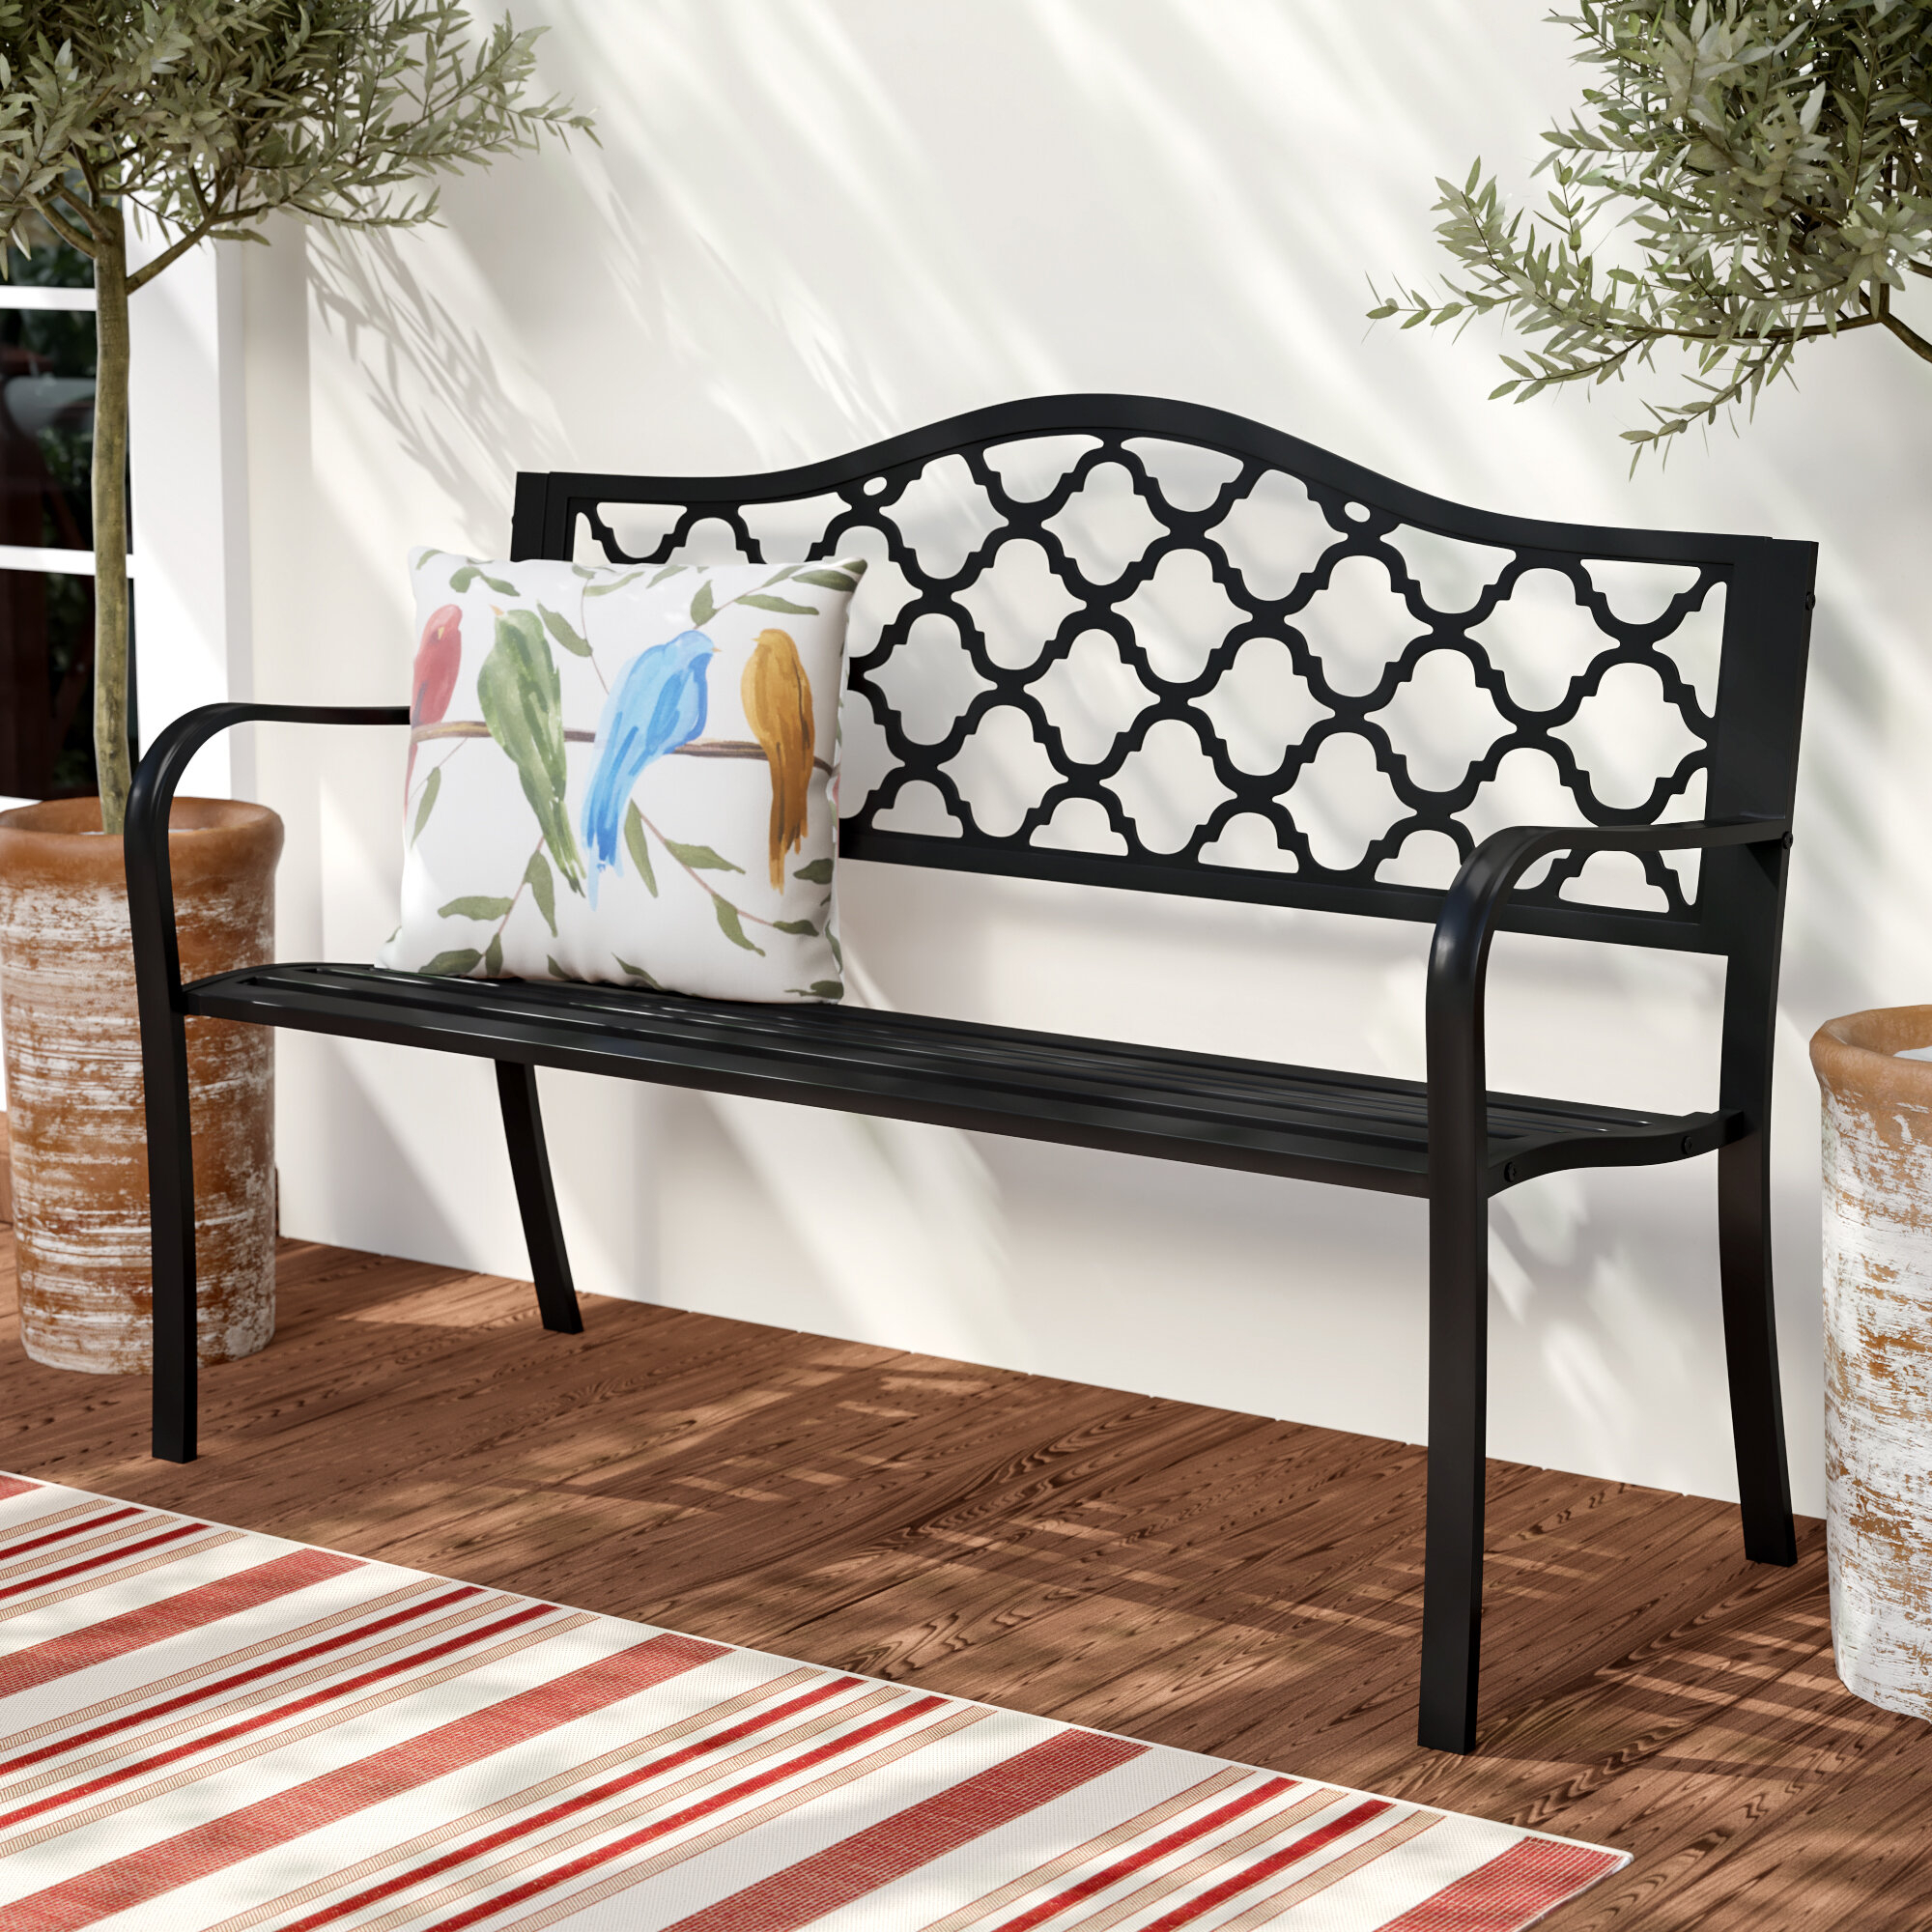 Curved Outdoor Outdoor Benches You'Ll Love In 2020 | Wayfair In Aranita Tree Of Life Iron Garden Benches (View 4 of 25)